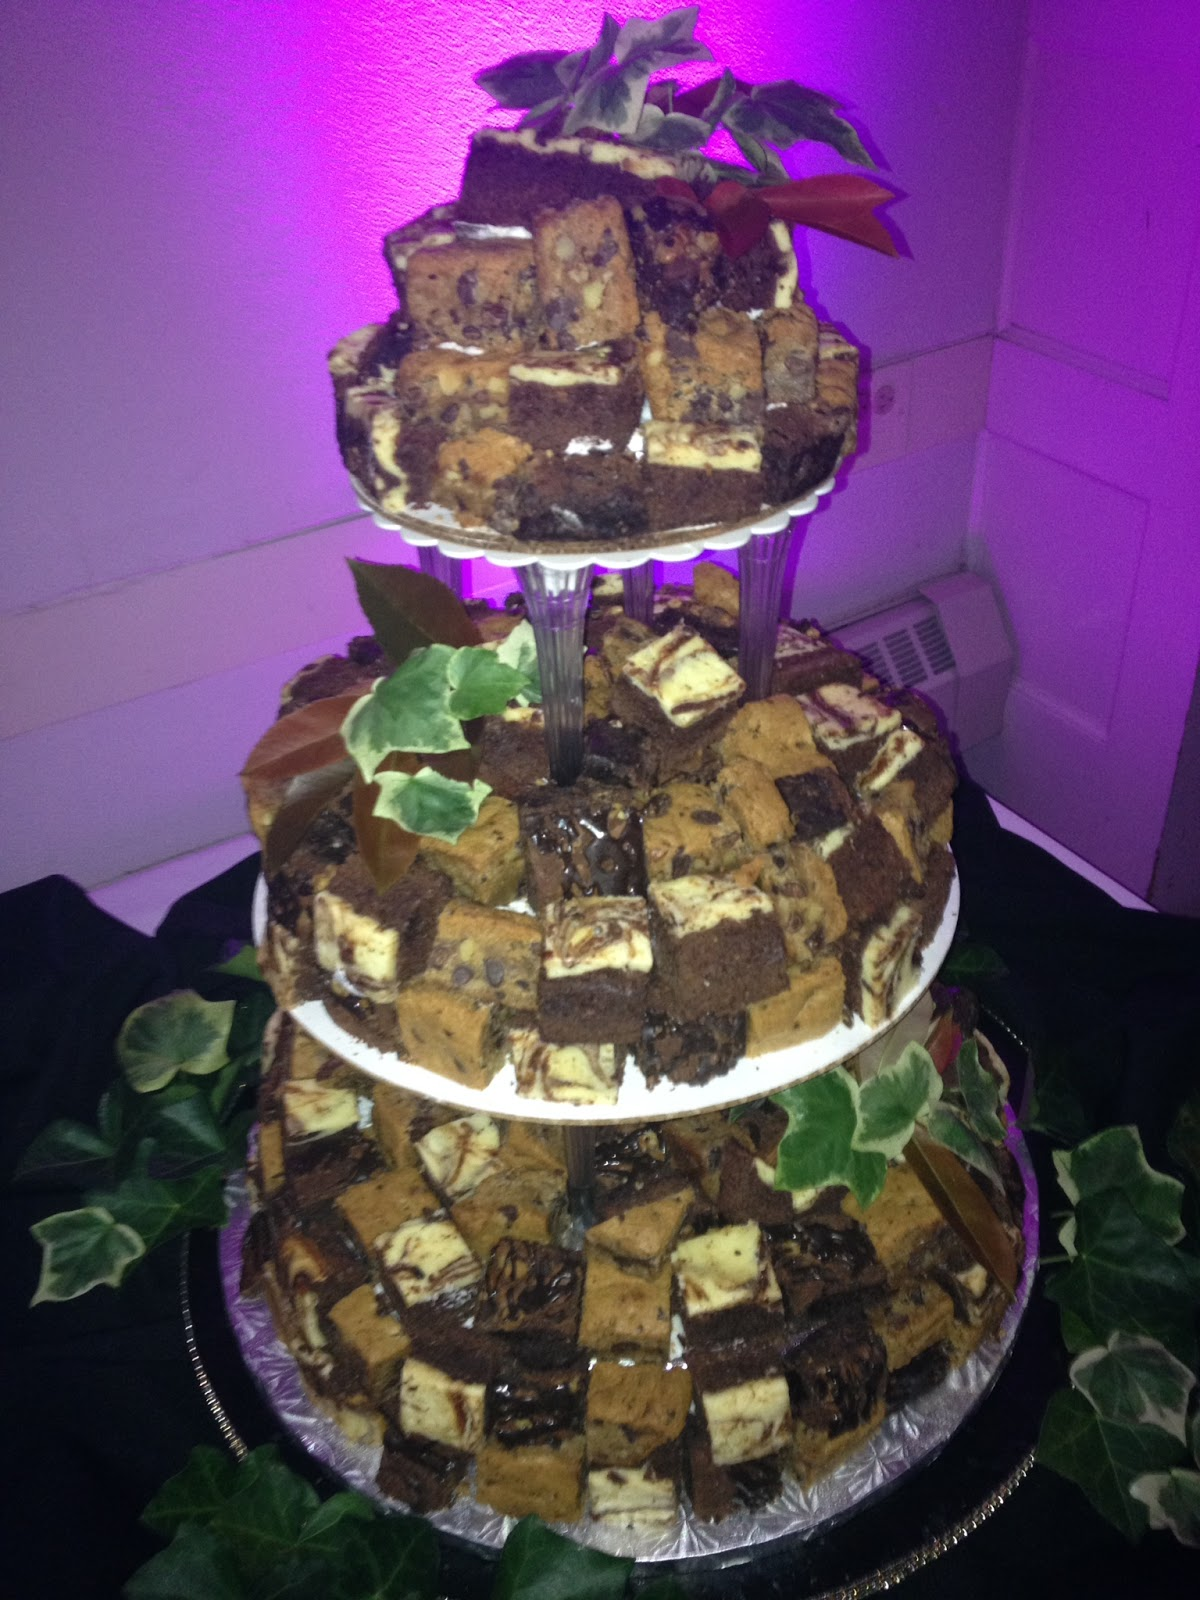 Ten Best Wedding Cakes of 2015 Catering By Teatime   Northern VA  DC     catering by teatime wedding cake